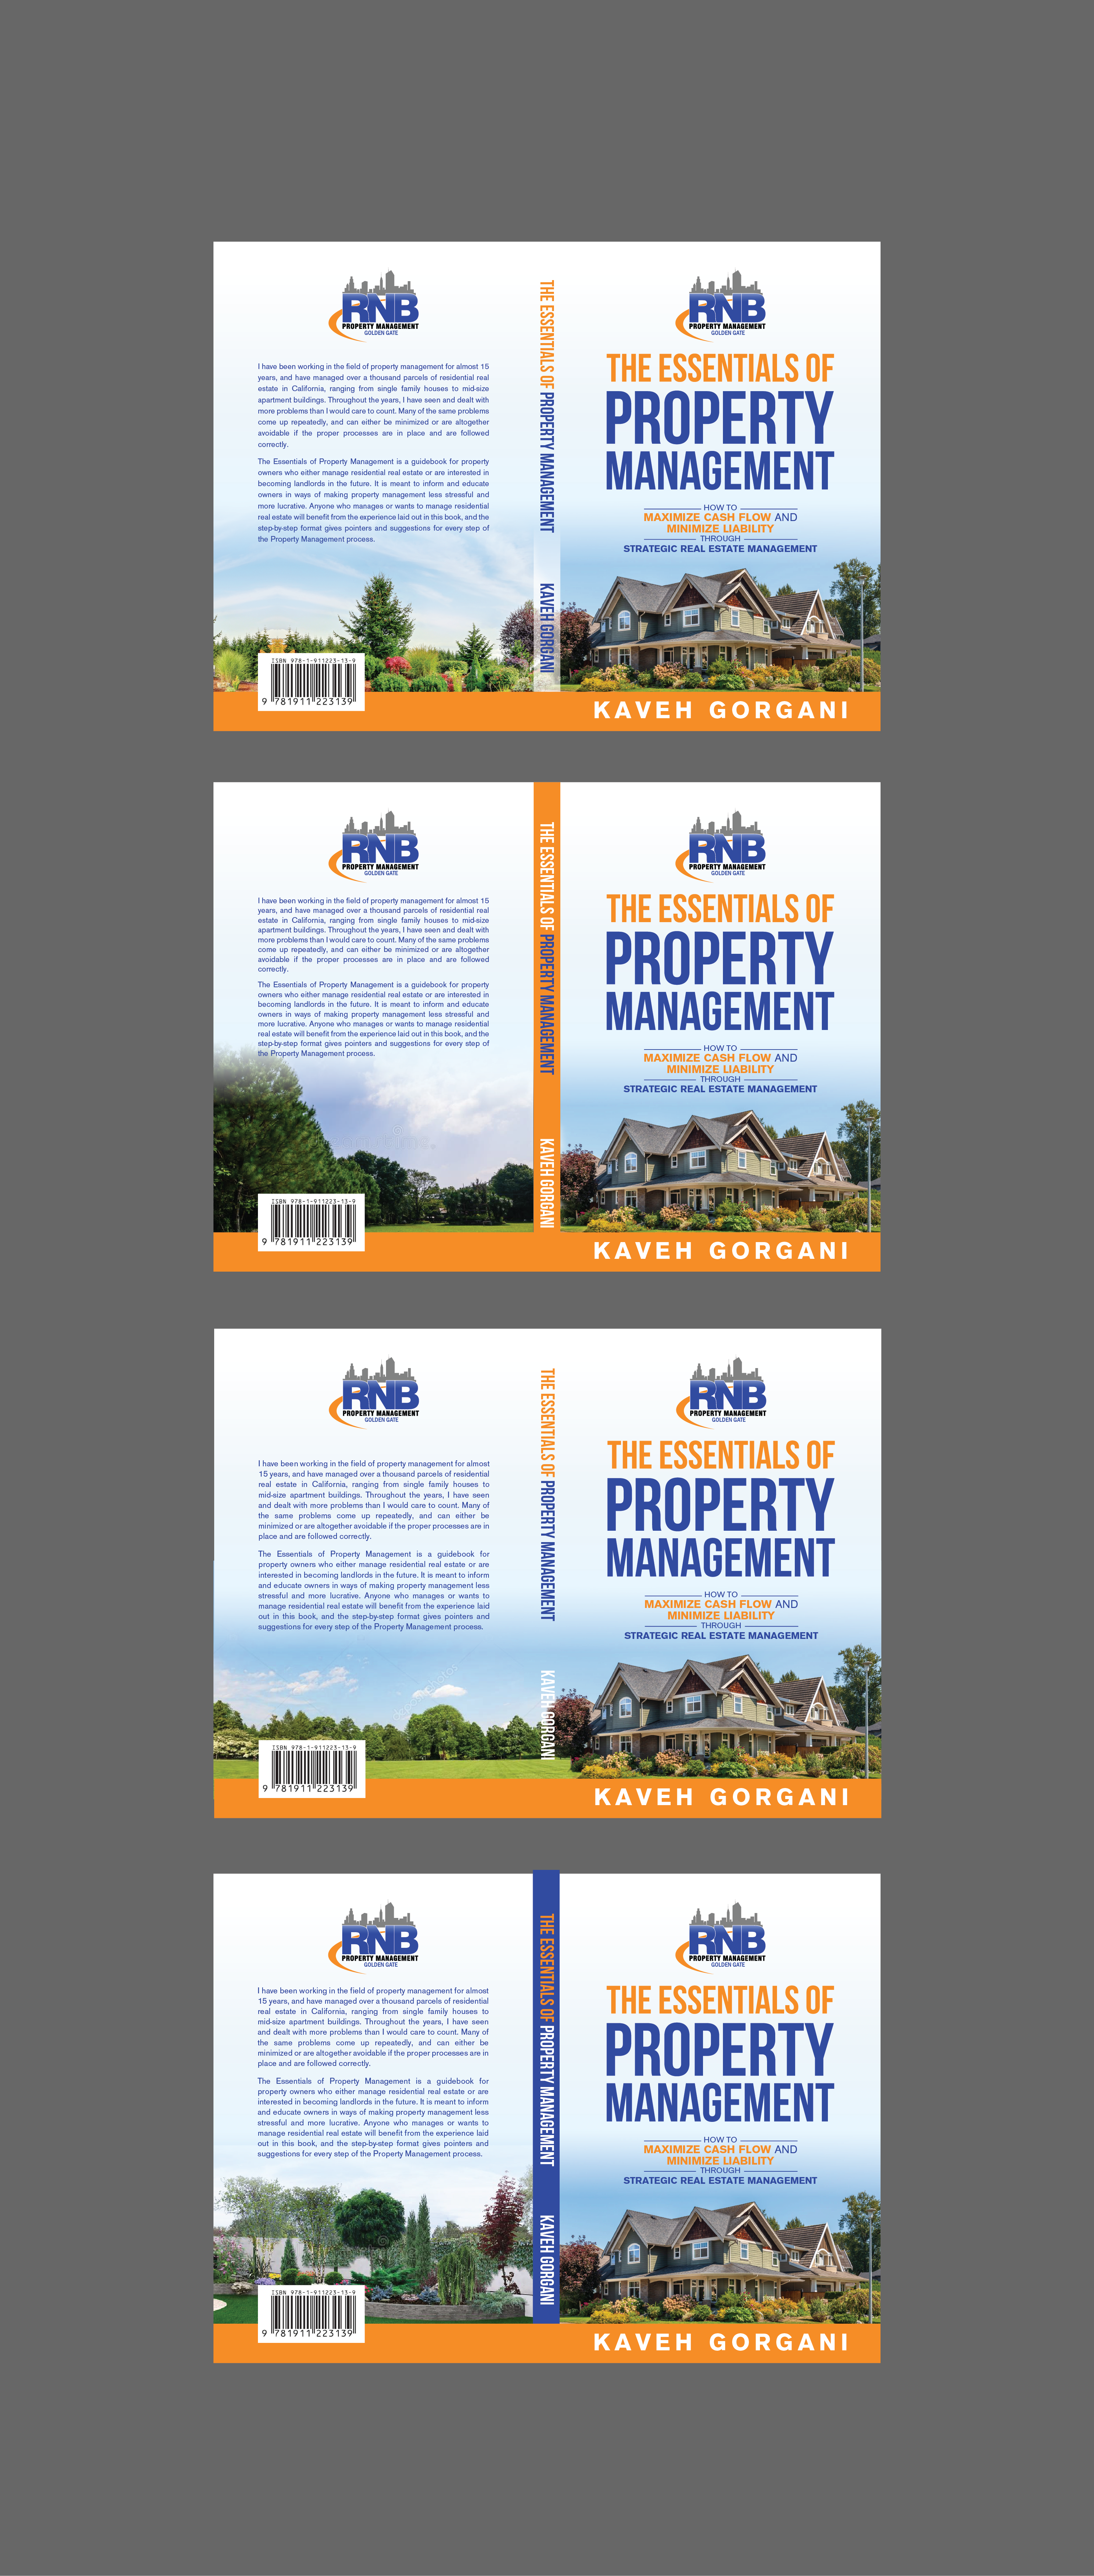 Looking for the help of a creative genius for my first Real Estate book cover!